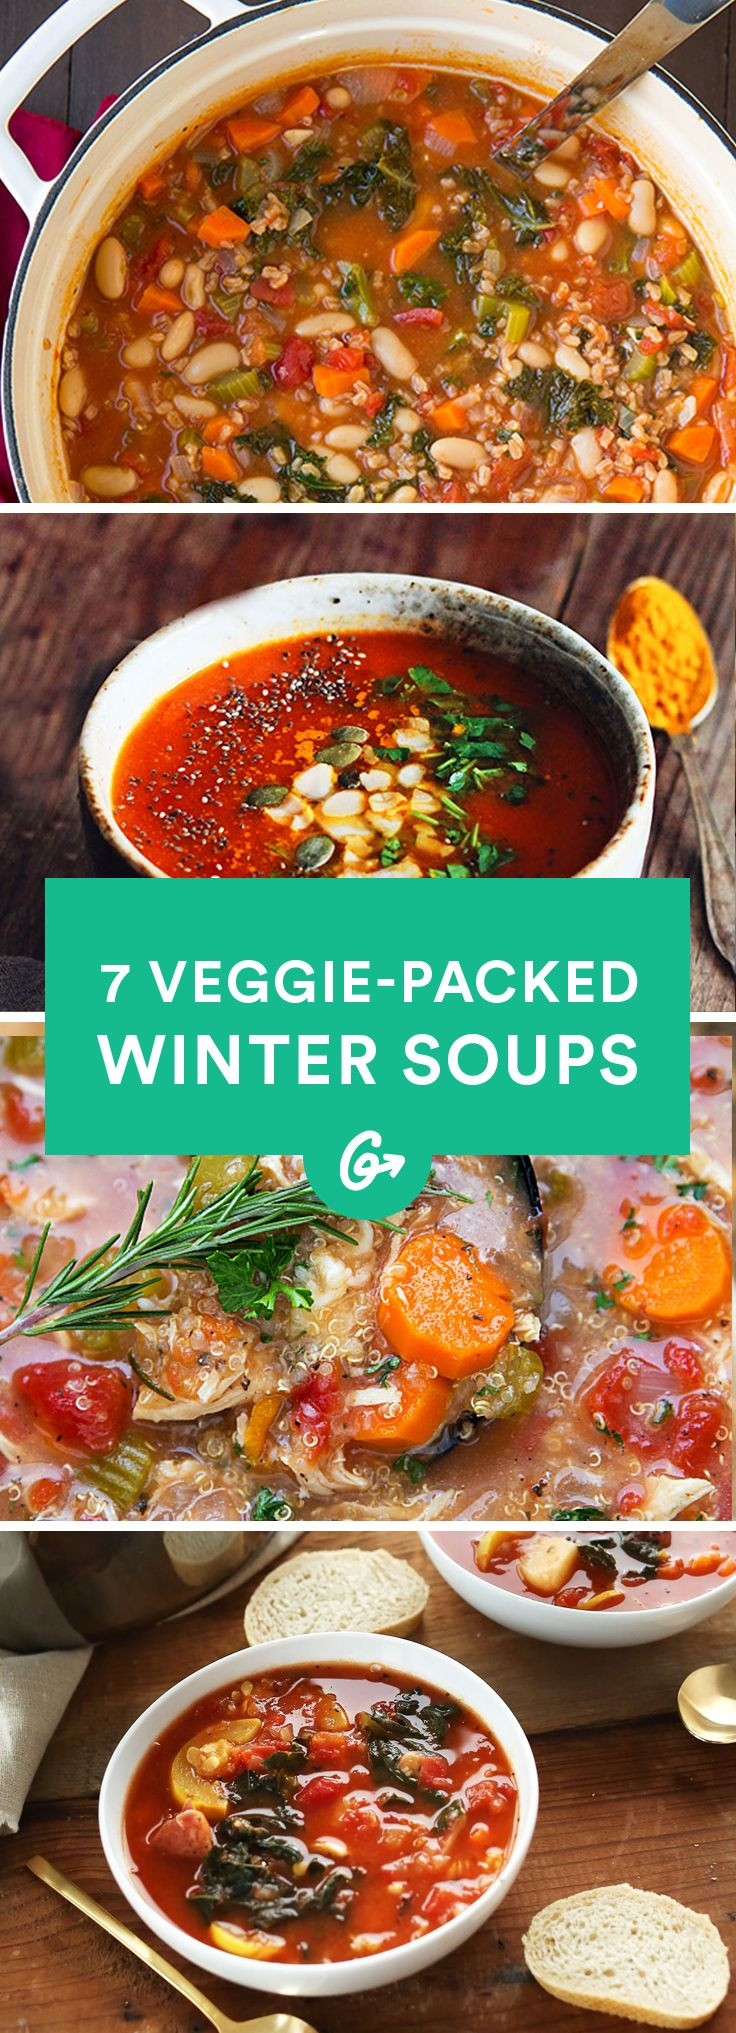 Healthy Winter Soups  7 Quick and Healthy Winter Soups GlavPortal